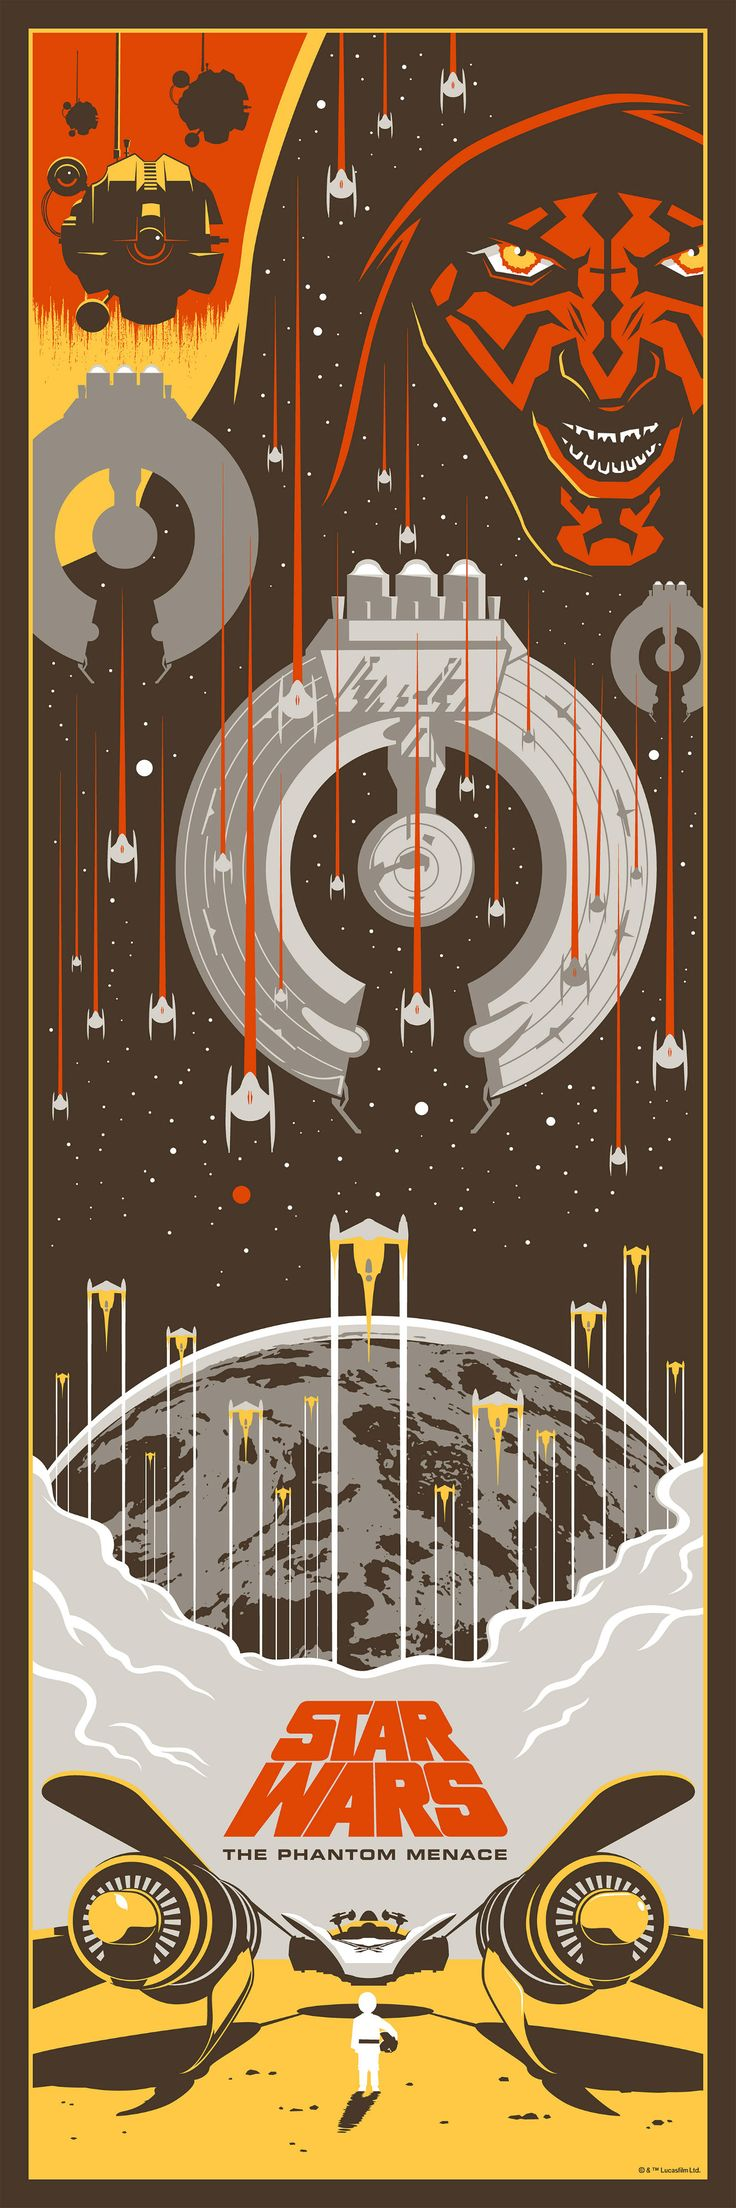 The Star Wars prequels will forever be a point of contention. Some love them as their Star Wars trilogy. Others find them mindless and painful. But even people with opinions as opposing as those would agree, these new posters by Eric Tan are the best of what those films offer.